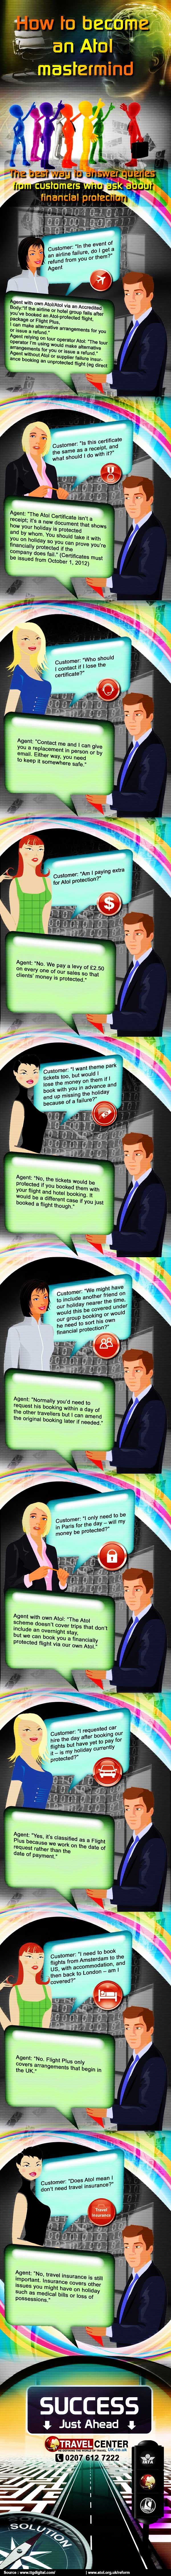 Become an Atol Mastermind (Infographic)